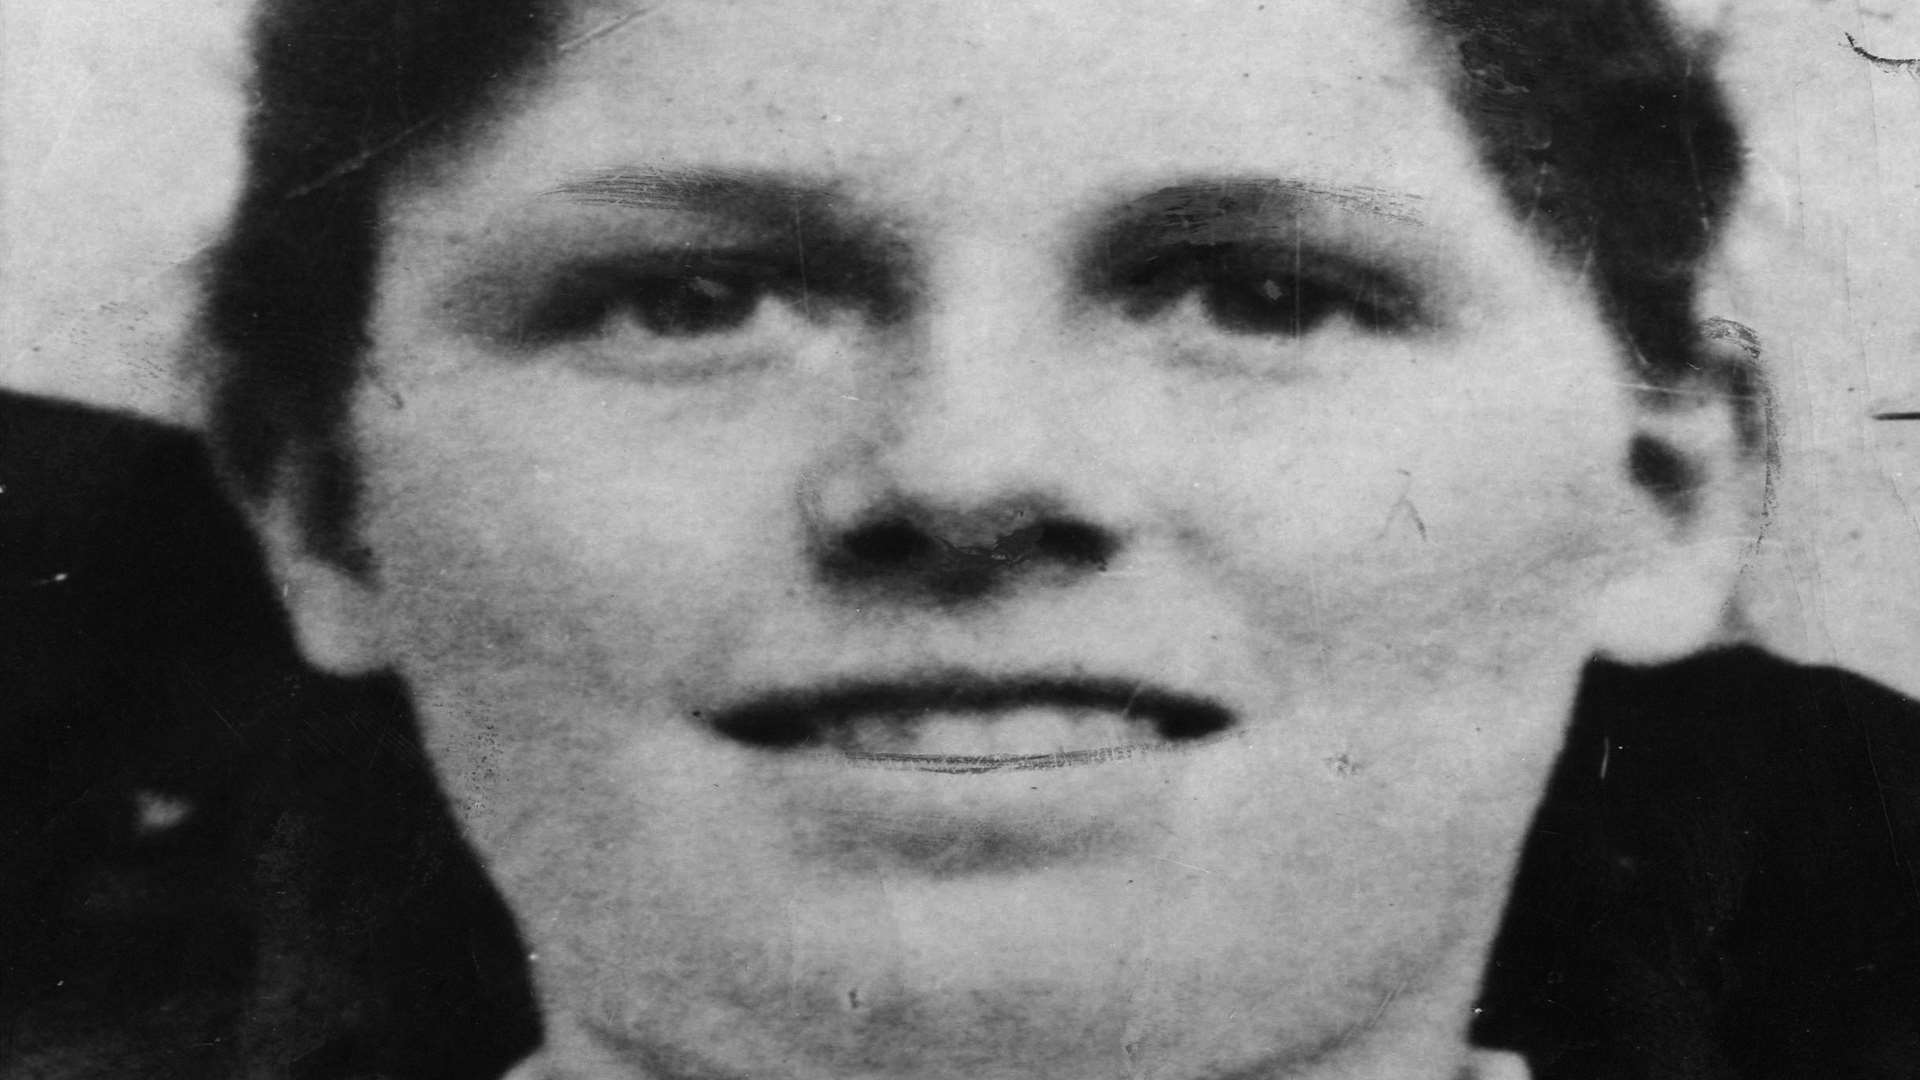 Muriel Drinkwater from Wales, who was killed in 1946